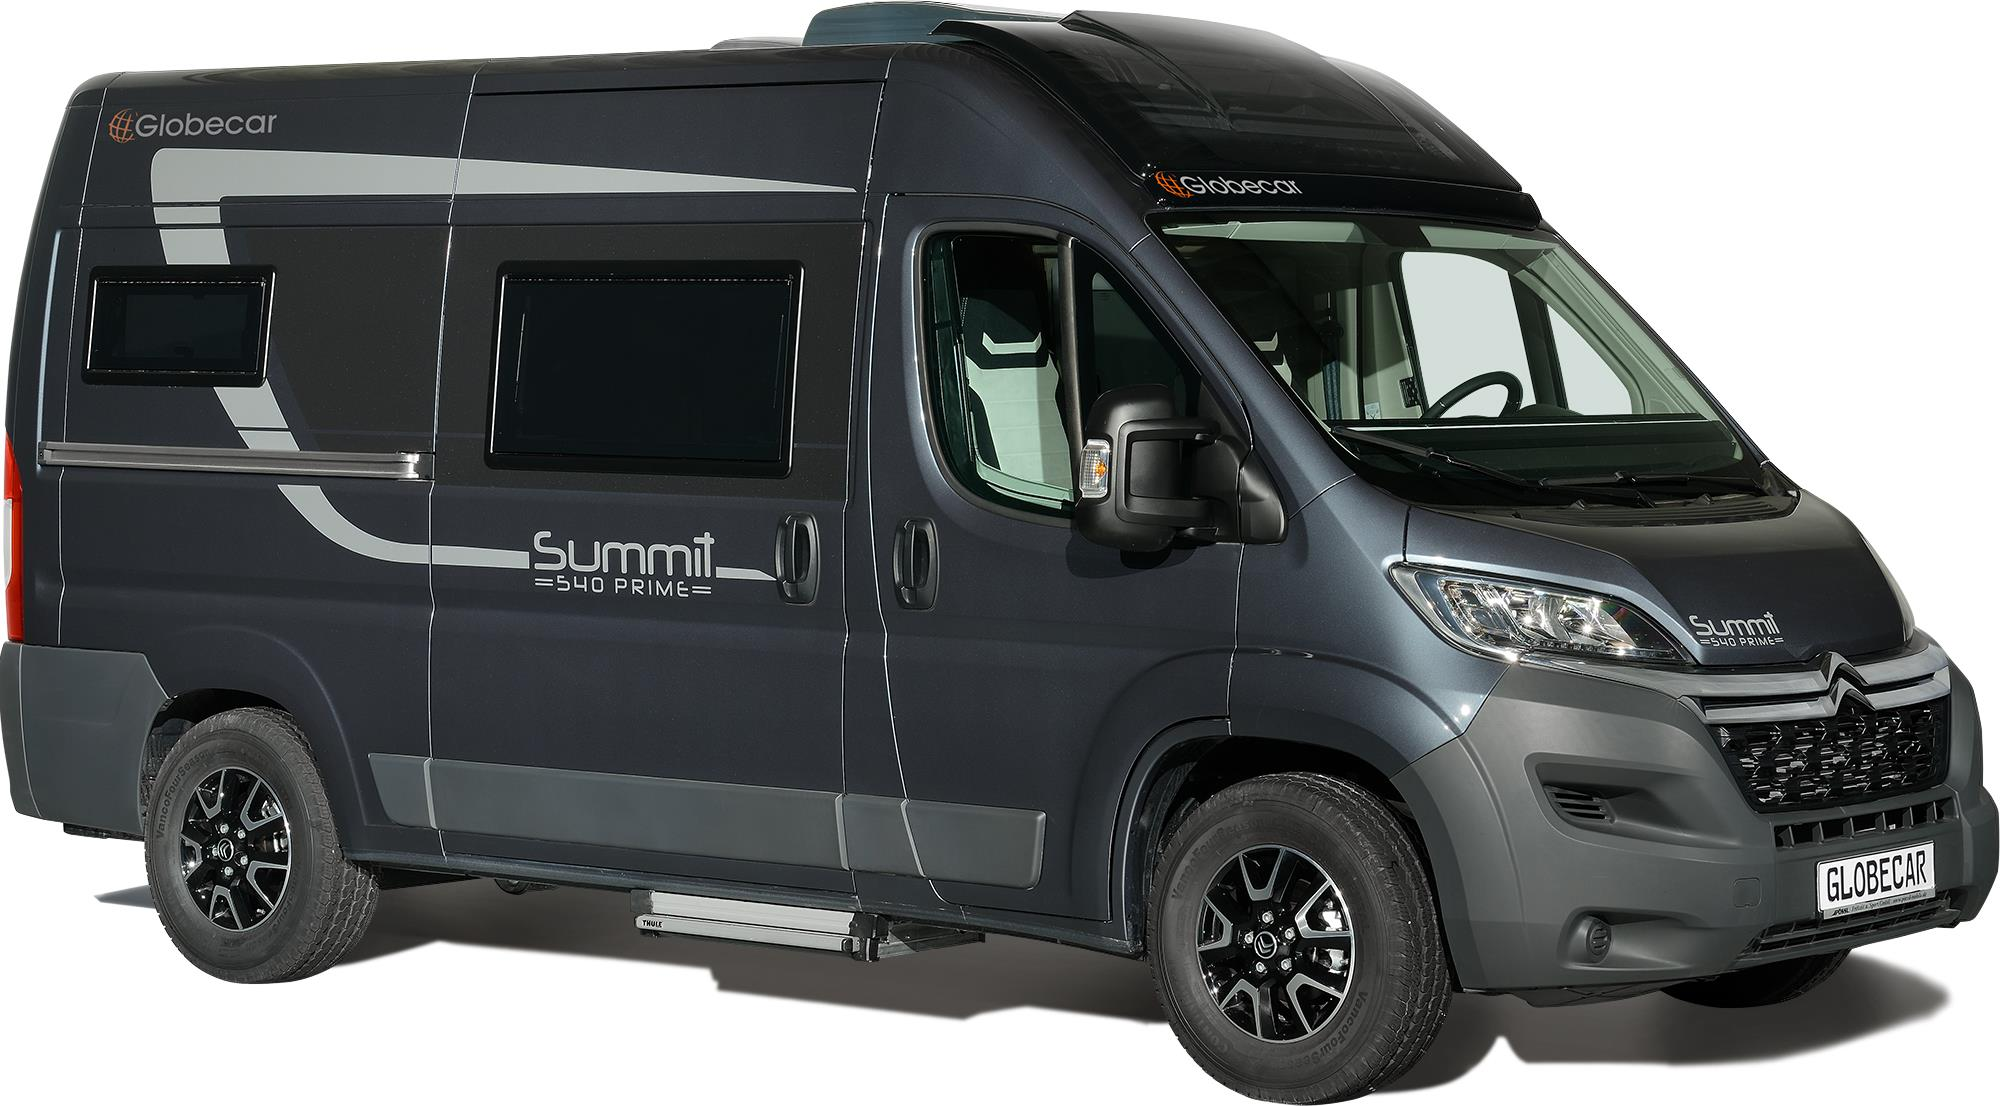 Globecar Summit Prime 540